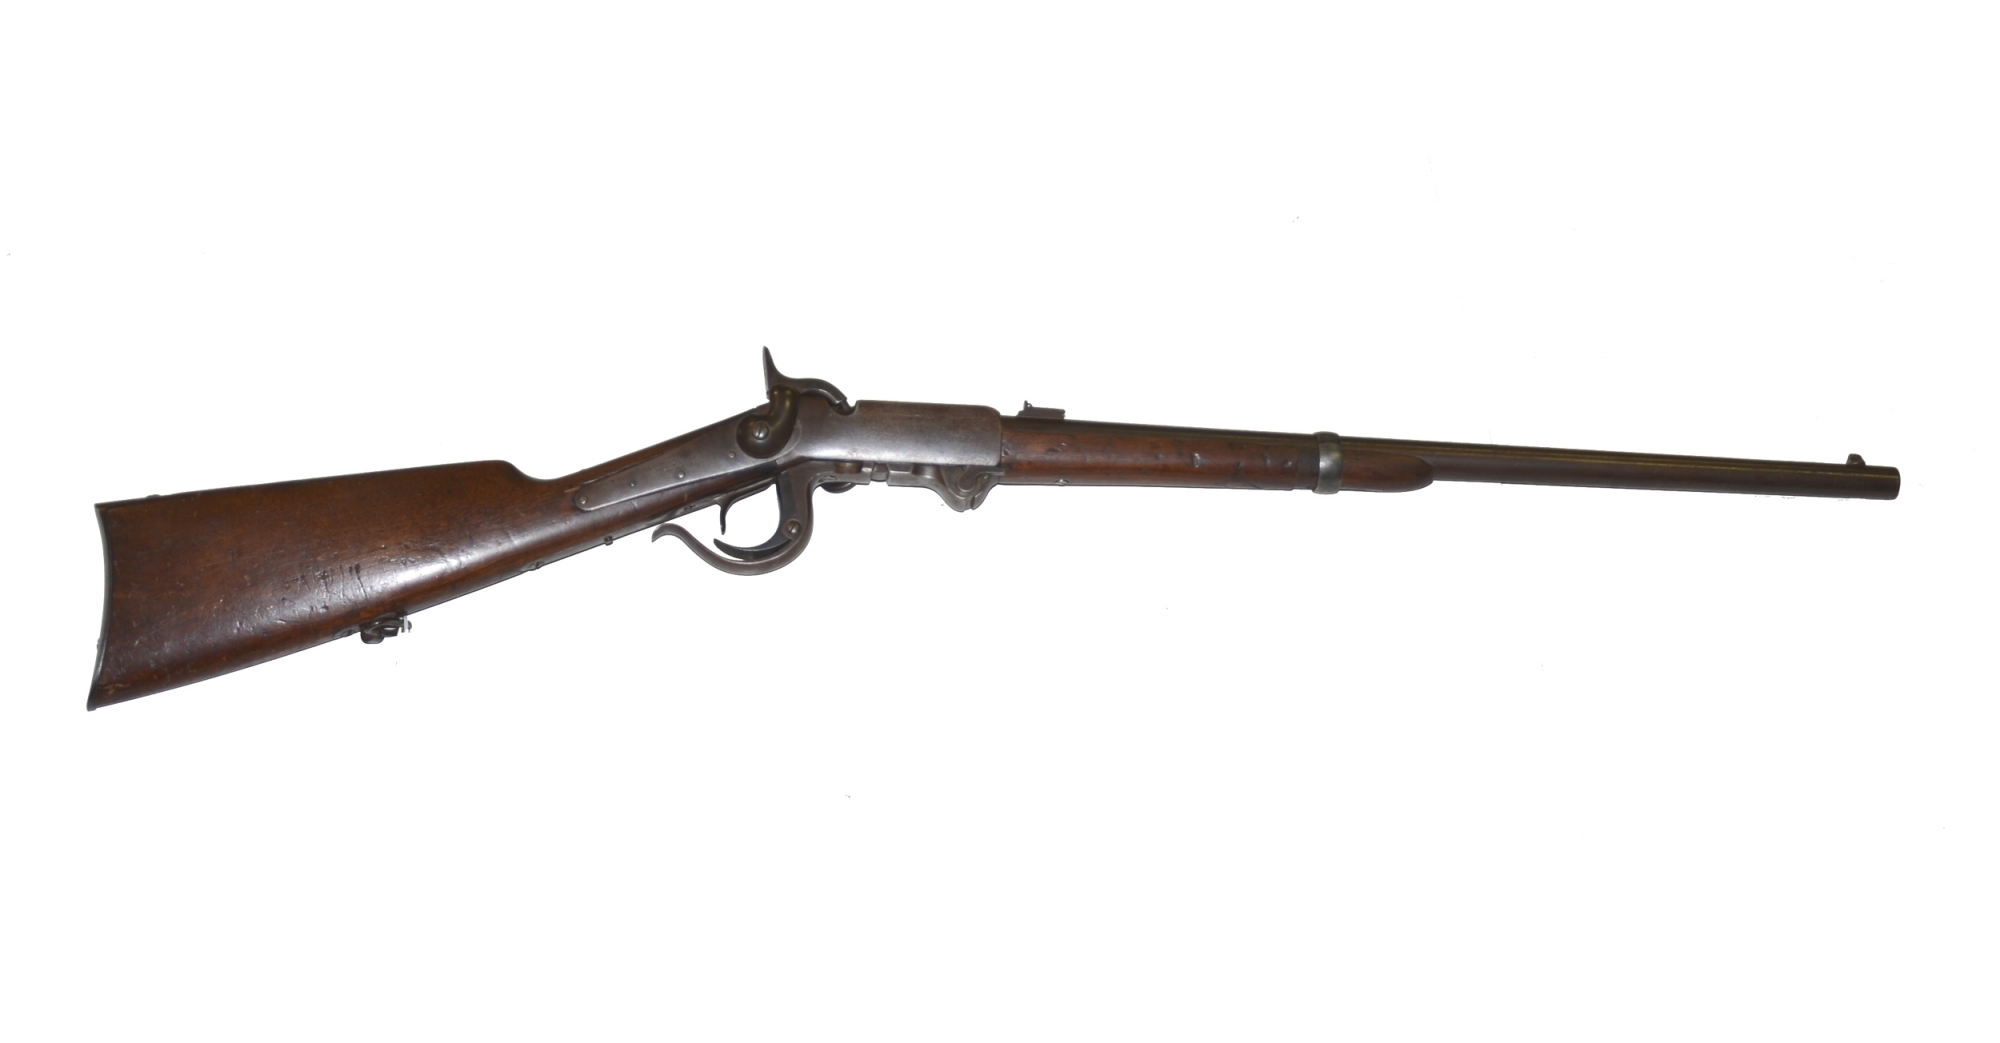 THIRD MODEL BURNSIDE CARBINE IN VERY GOOD ORIGINAL CONDITION